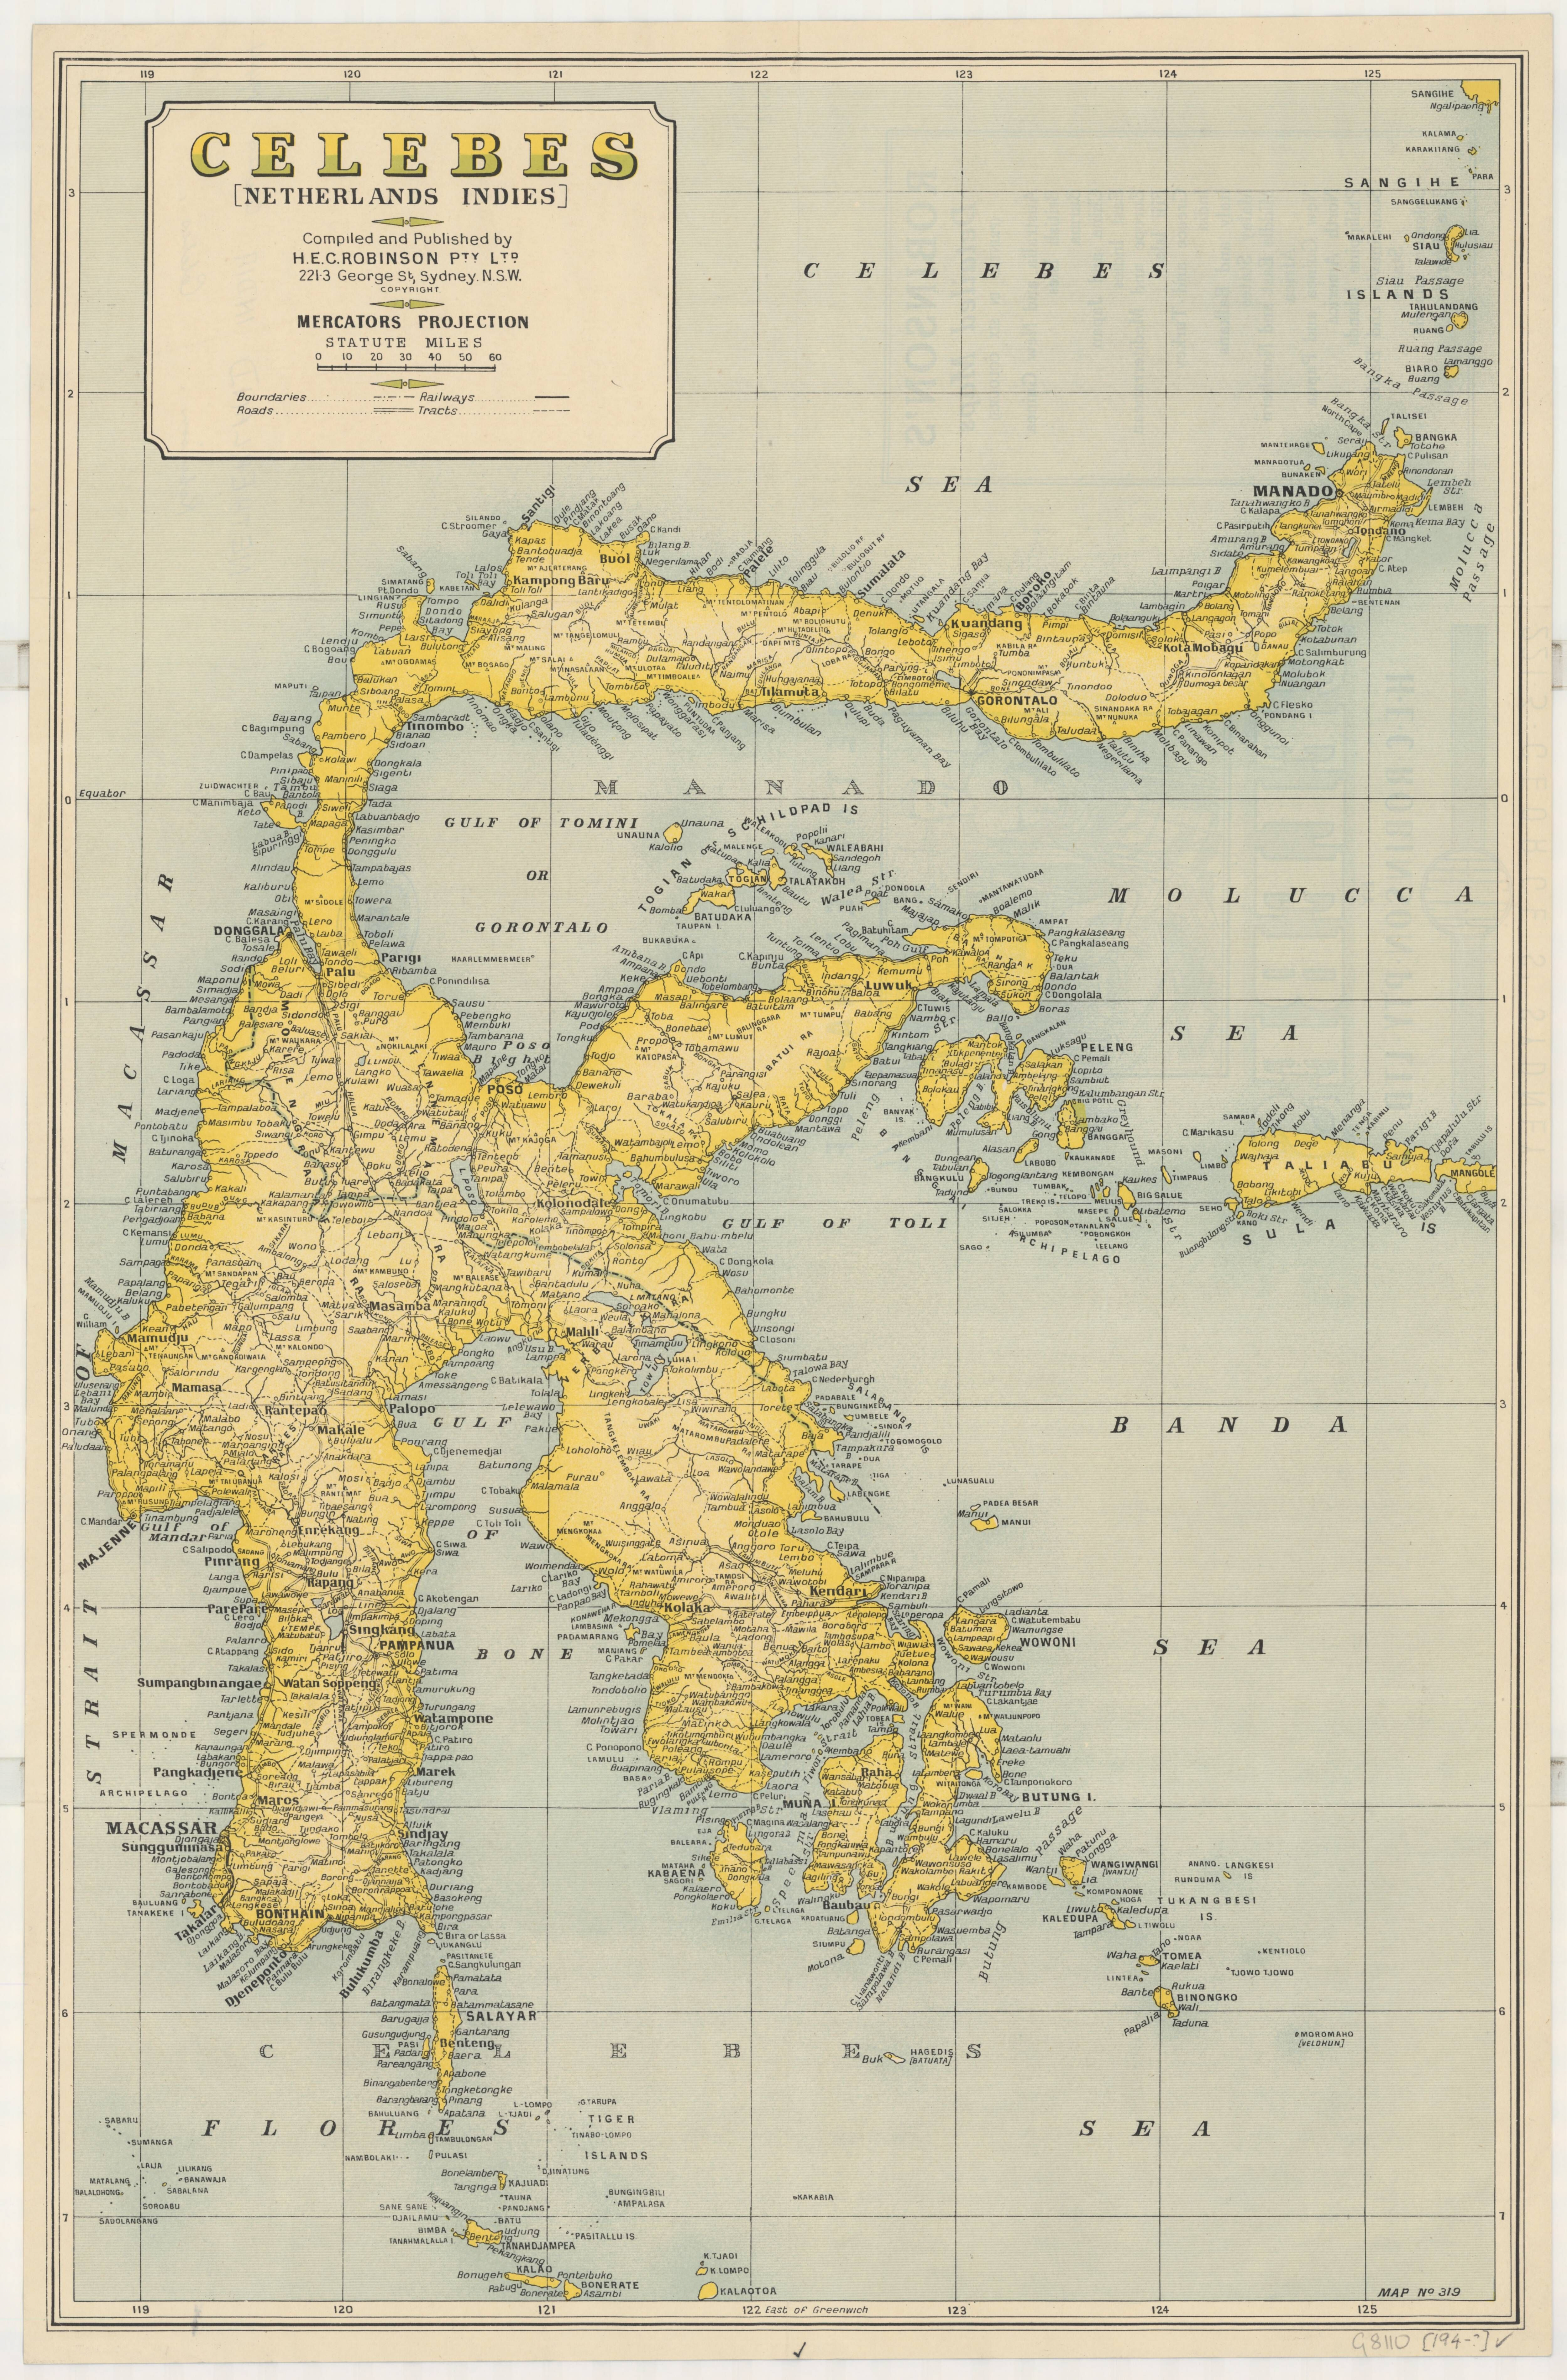 1940s map of sulawesi celebes indonesia historical world atlas 1940s map of sulawesi celebes indonesia gumiabroncs Gallery